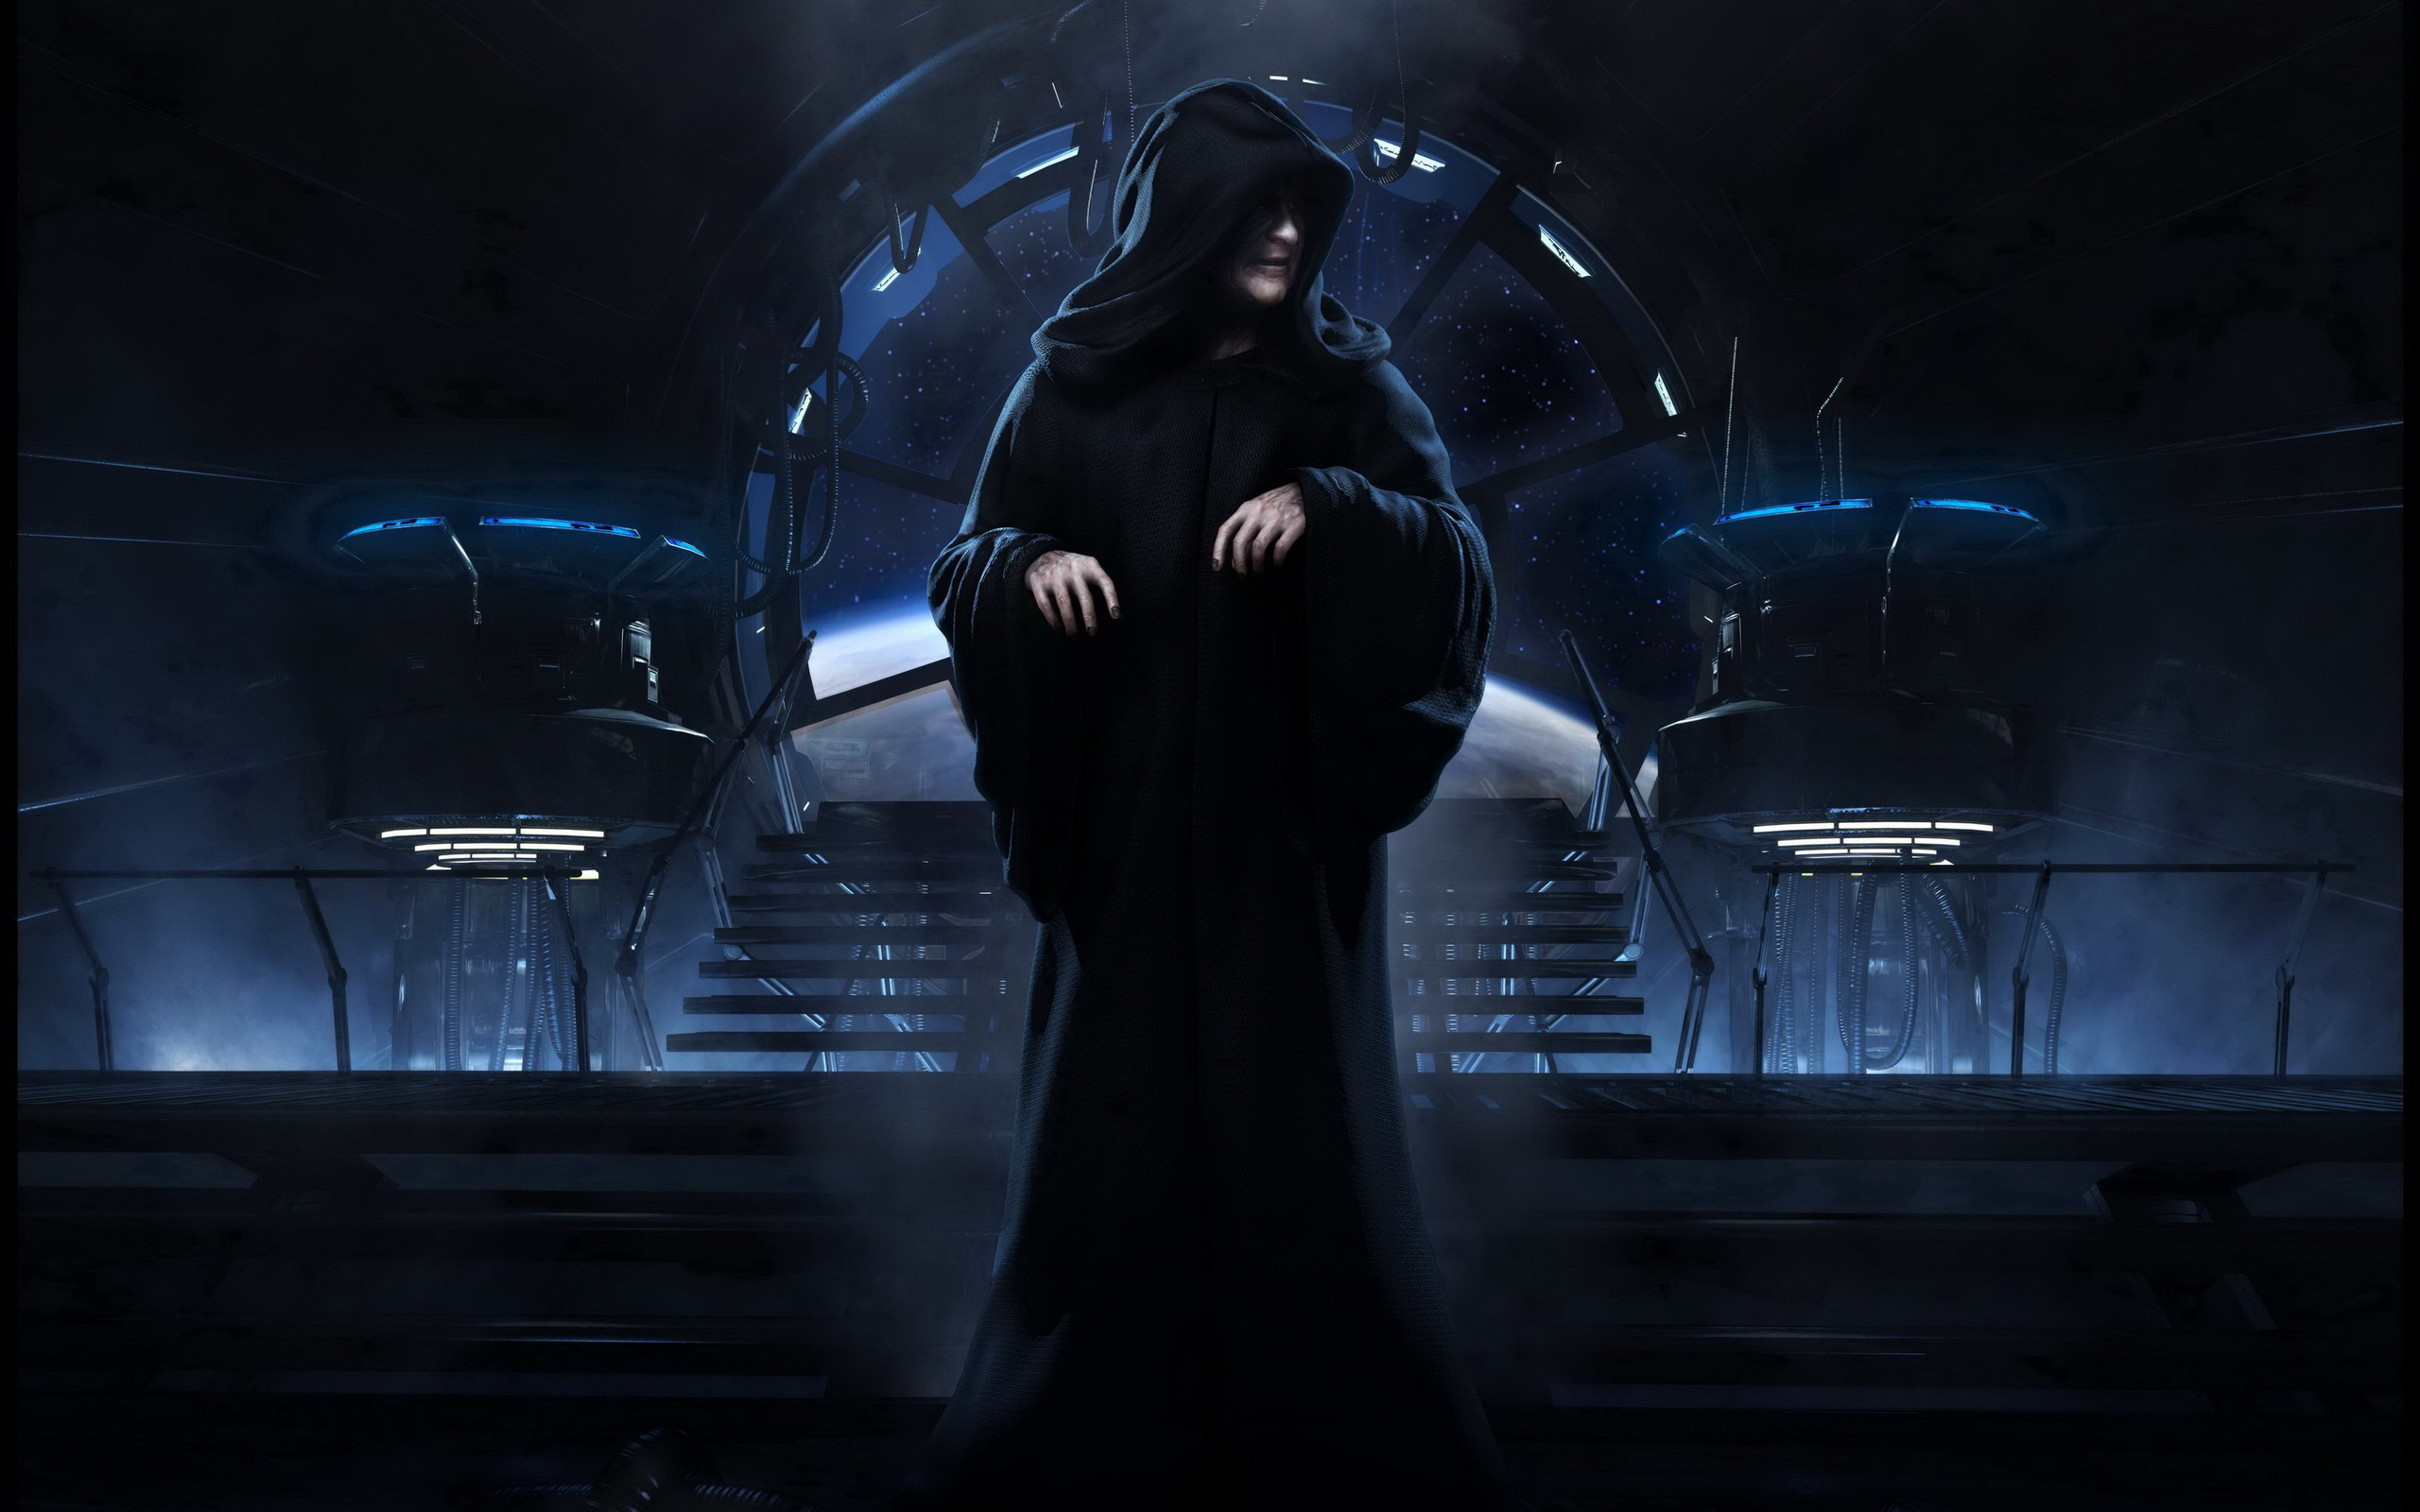 star wars force unleashed 2 wallpapers 21821 2560x1600